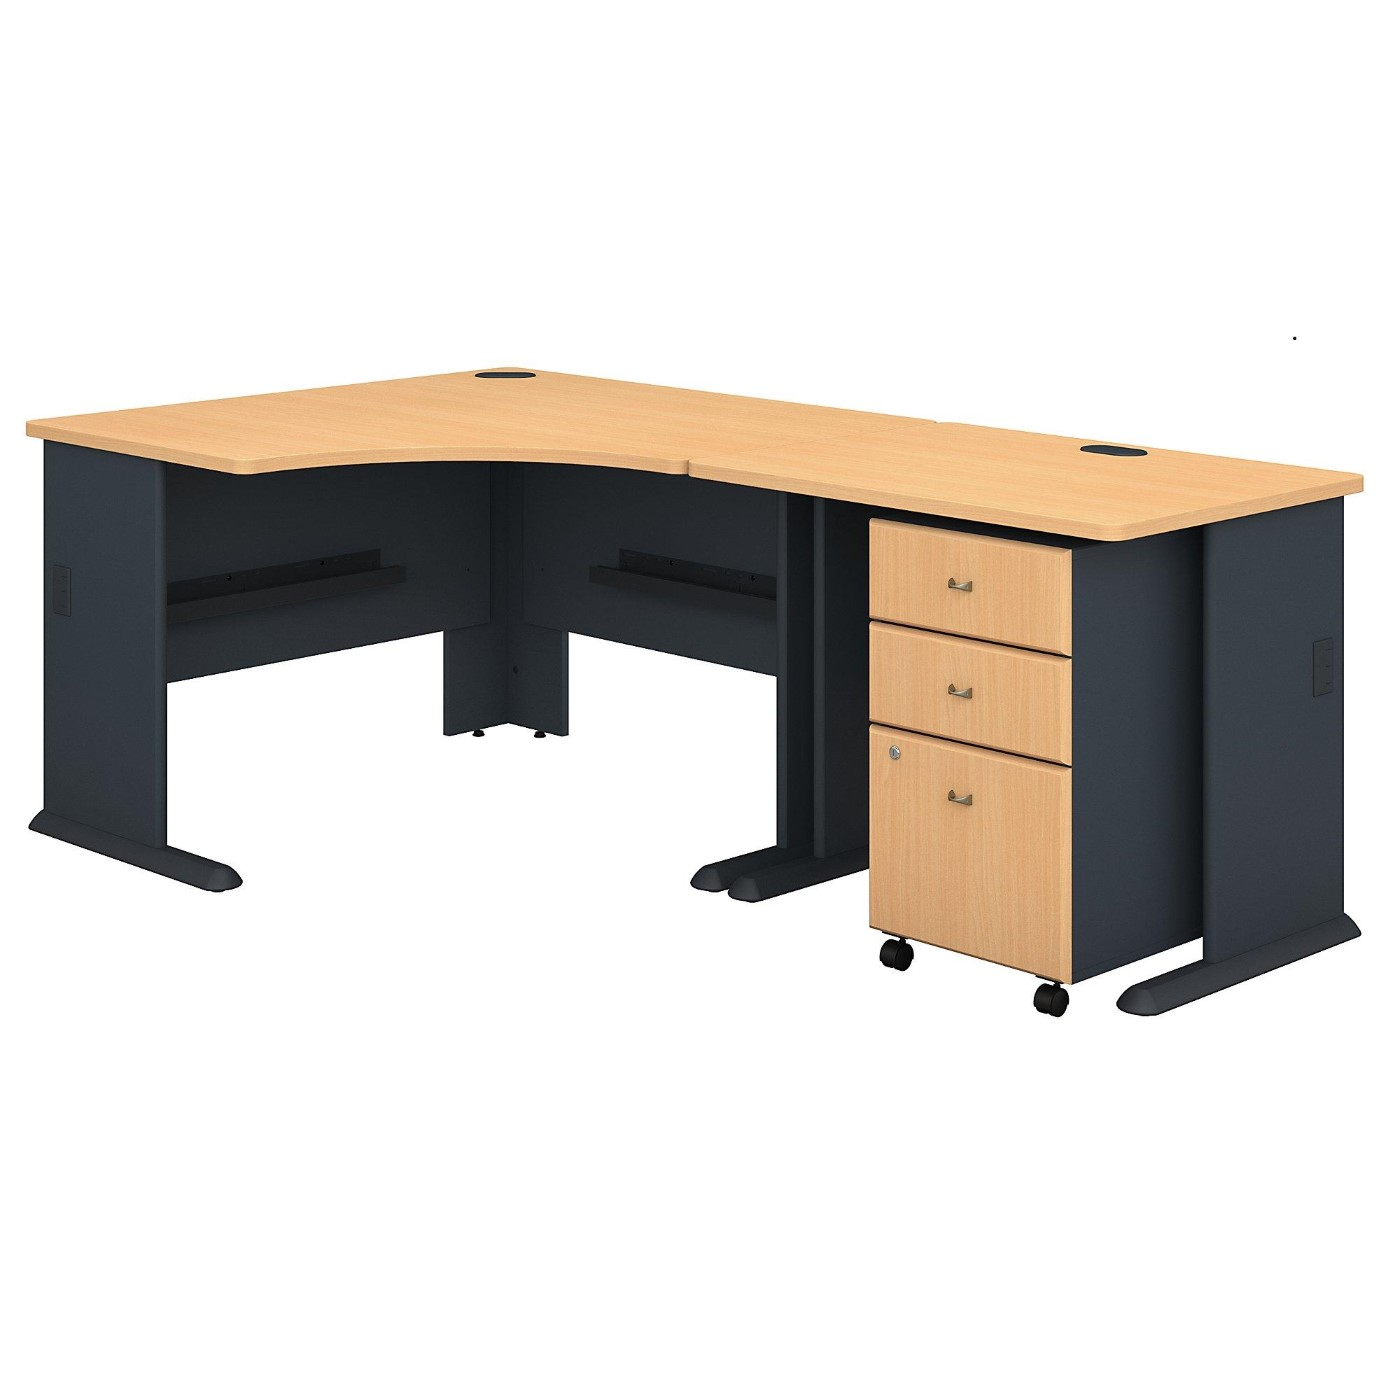 <font color=#c60><b>BUSH BUSINESS FURNITURE SERIES A 48W CORNER DESK WITH 36W RETURN AND MOBILE FILE CABINET #EH-SRA005BESU. FREE SHIPPING</font></b>